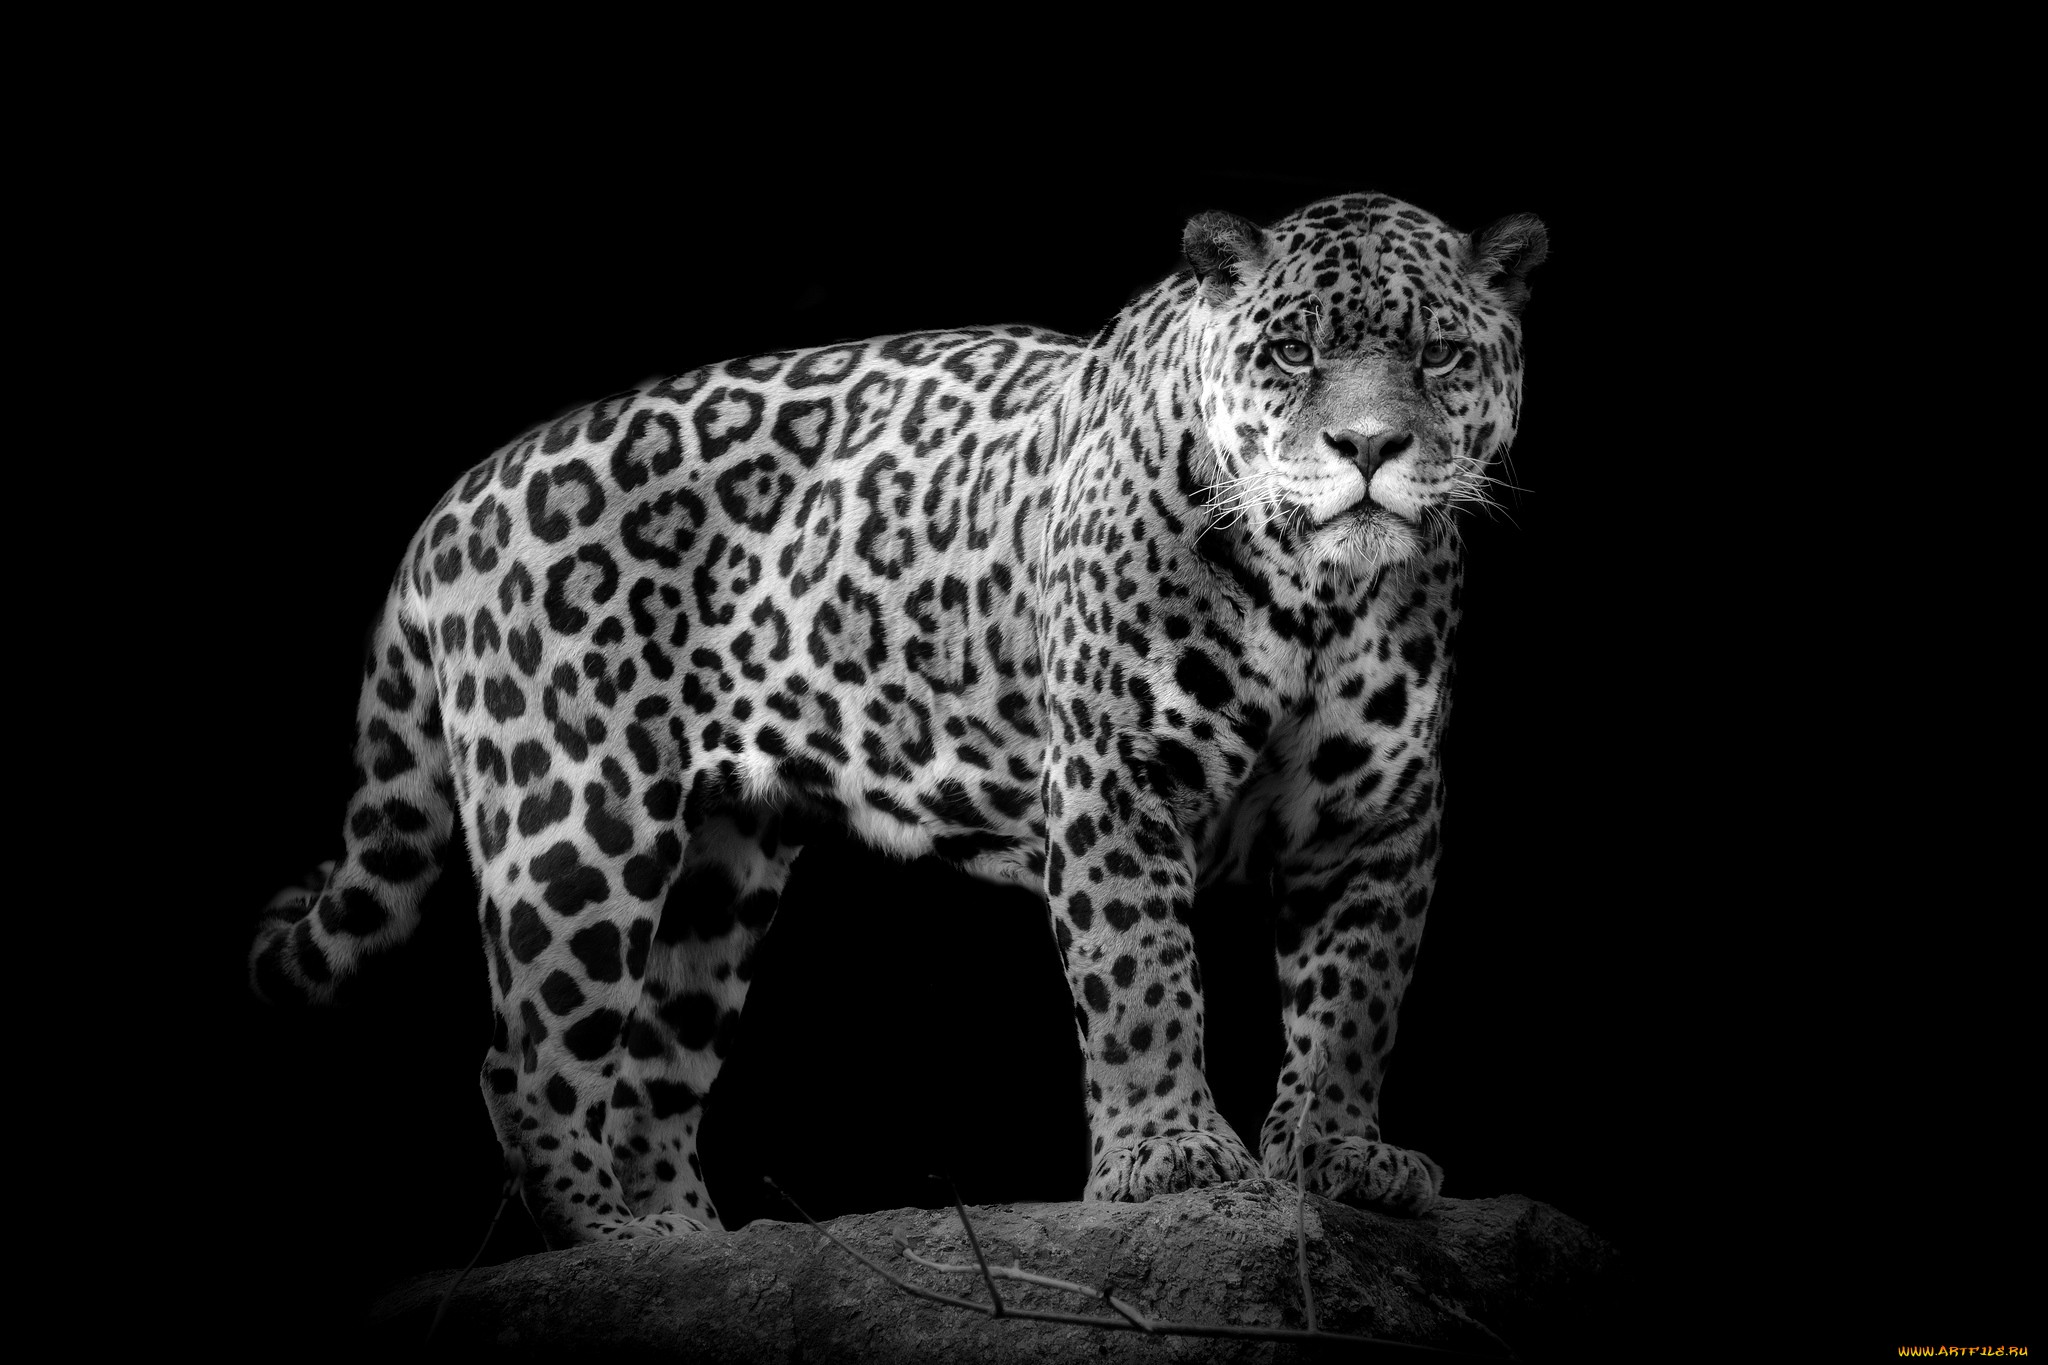 Jaguar hd wallpaper background image 2048x1365 id - Jaguar animal hd wallpapers ...